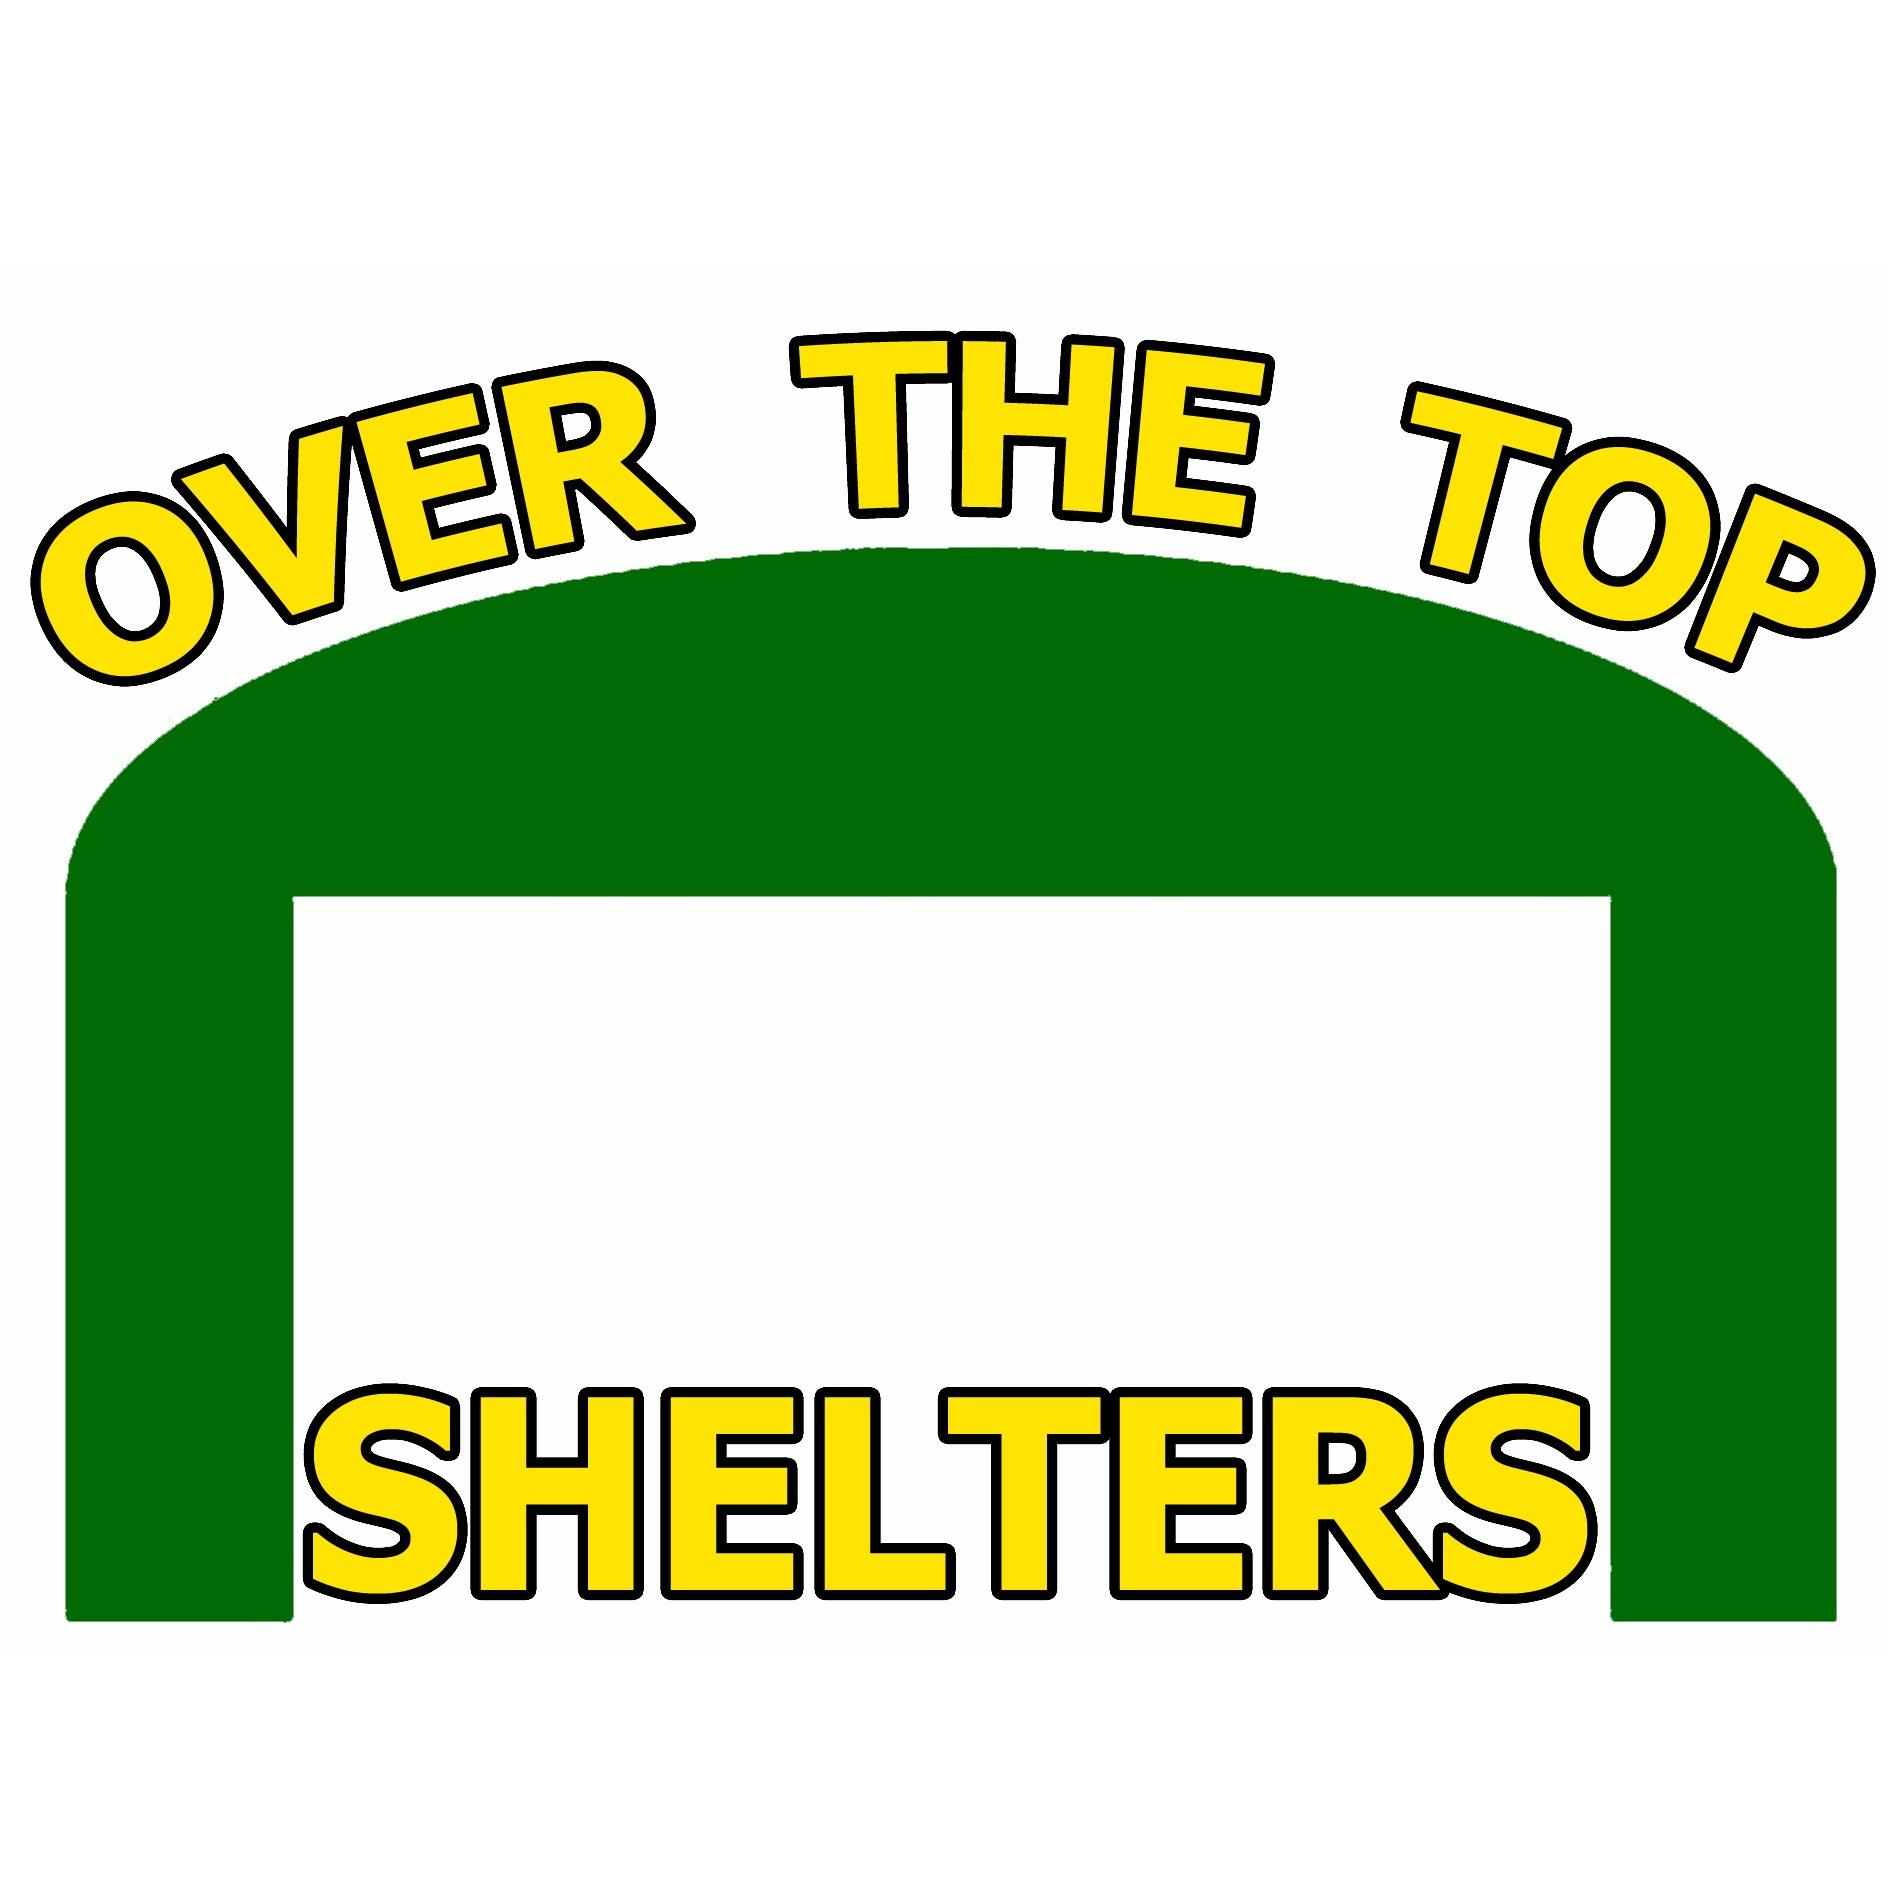 Over The Top Shelters LLC image 2